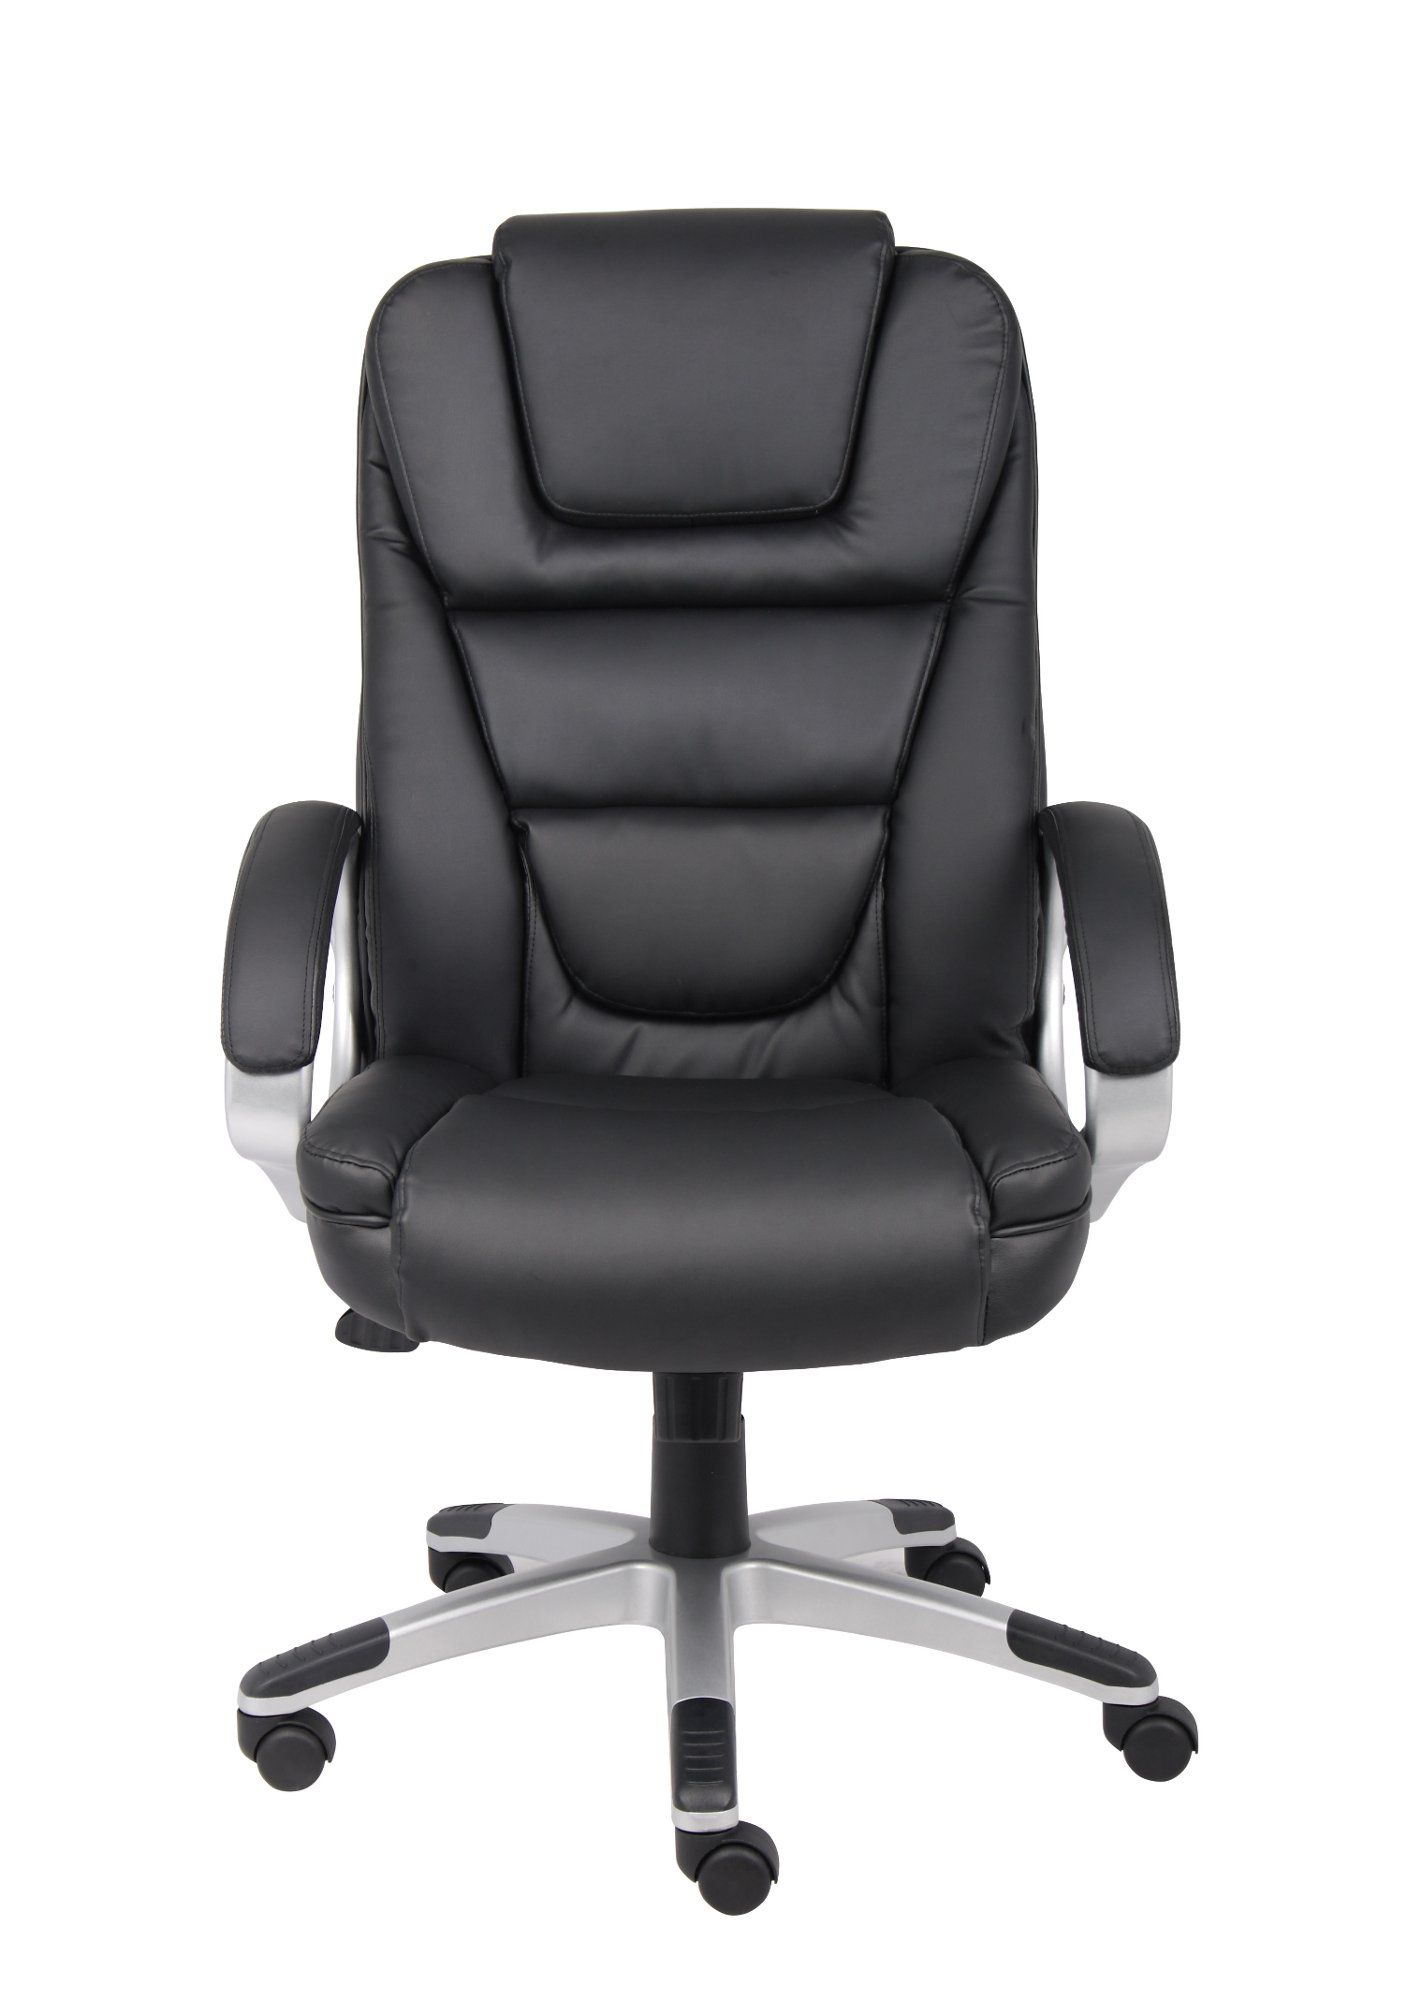 Black Executive Leatherplus Office Chair Modern Home Office